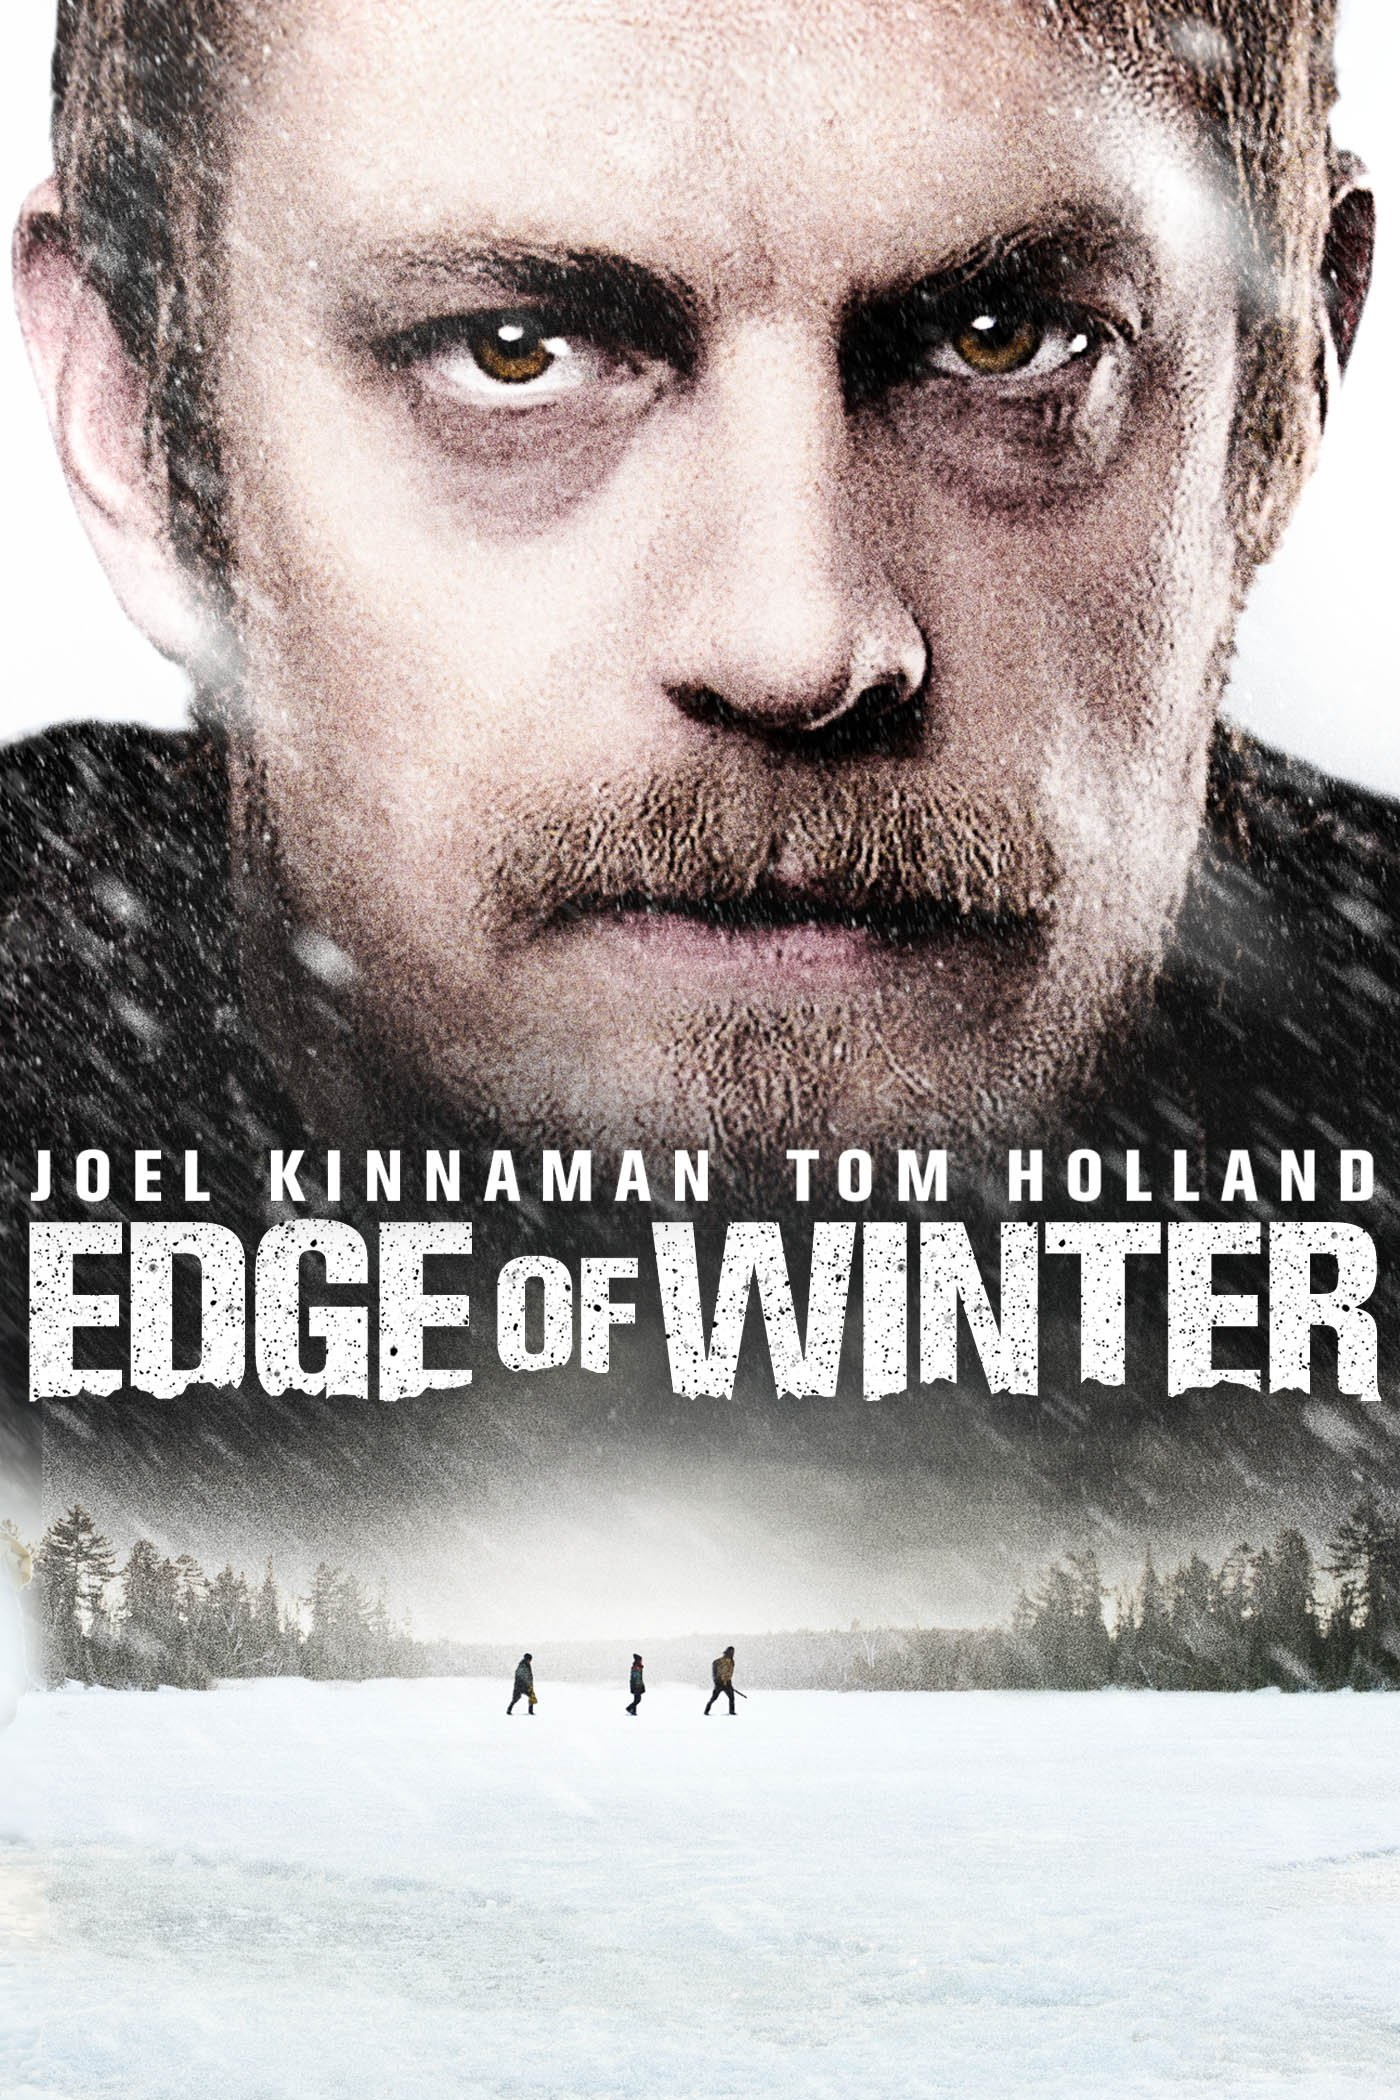 edge of winter - 5 Recent Sleeper Horror Movies You Must Seek Out